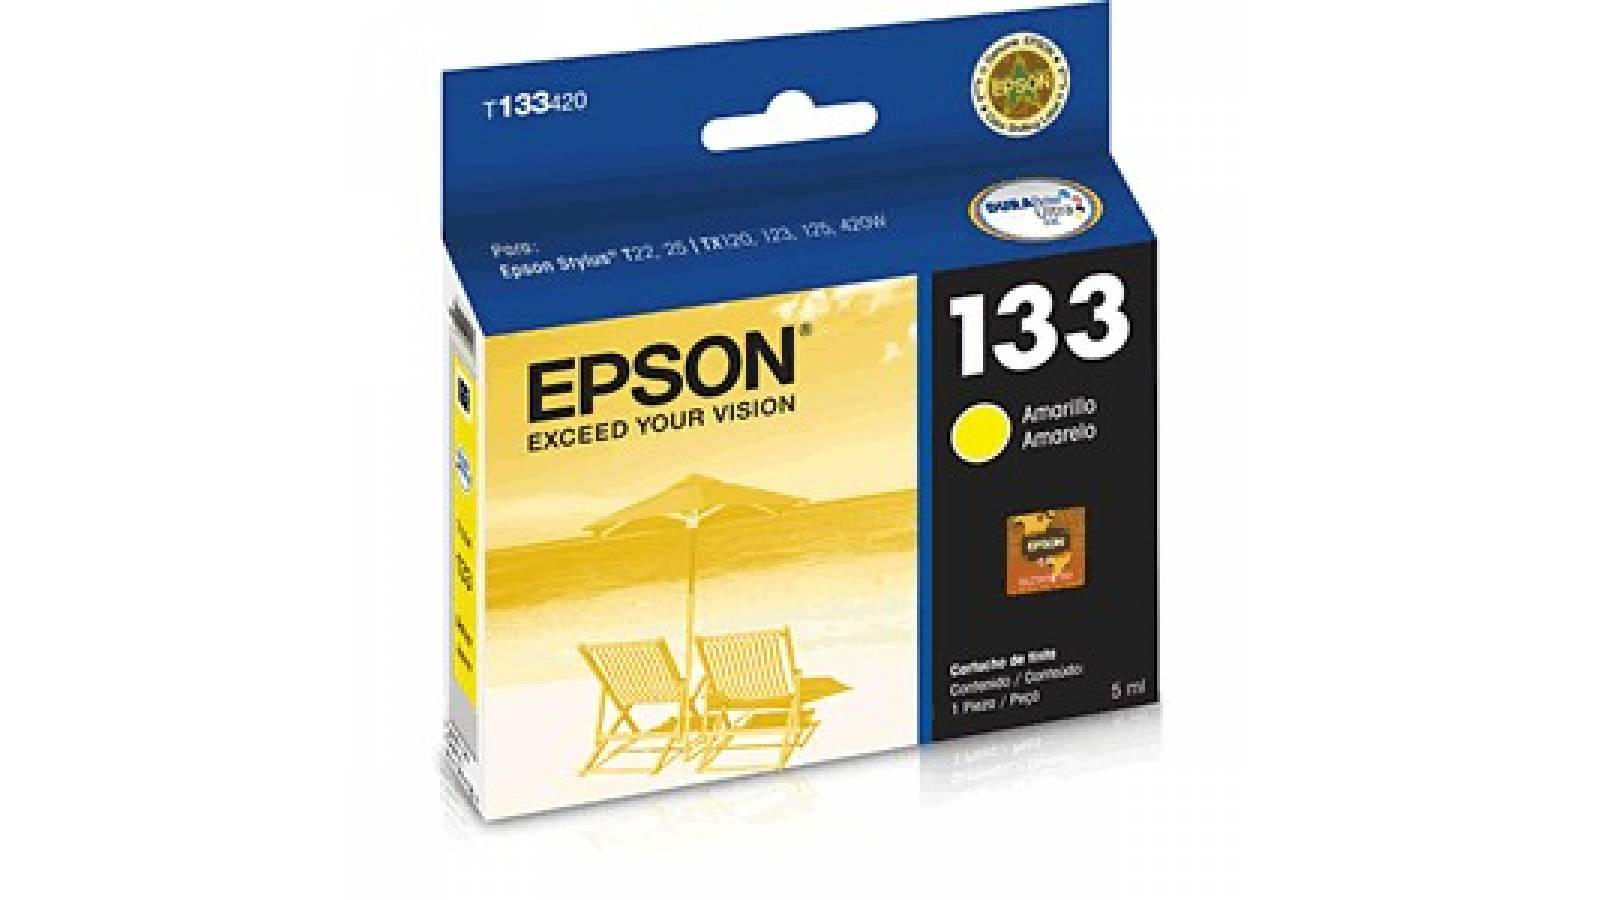 CARTUCHO ORIGINAL EPSON 133 YELLOW